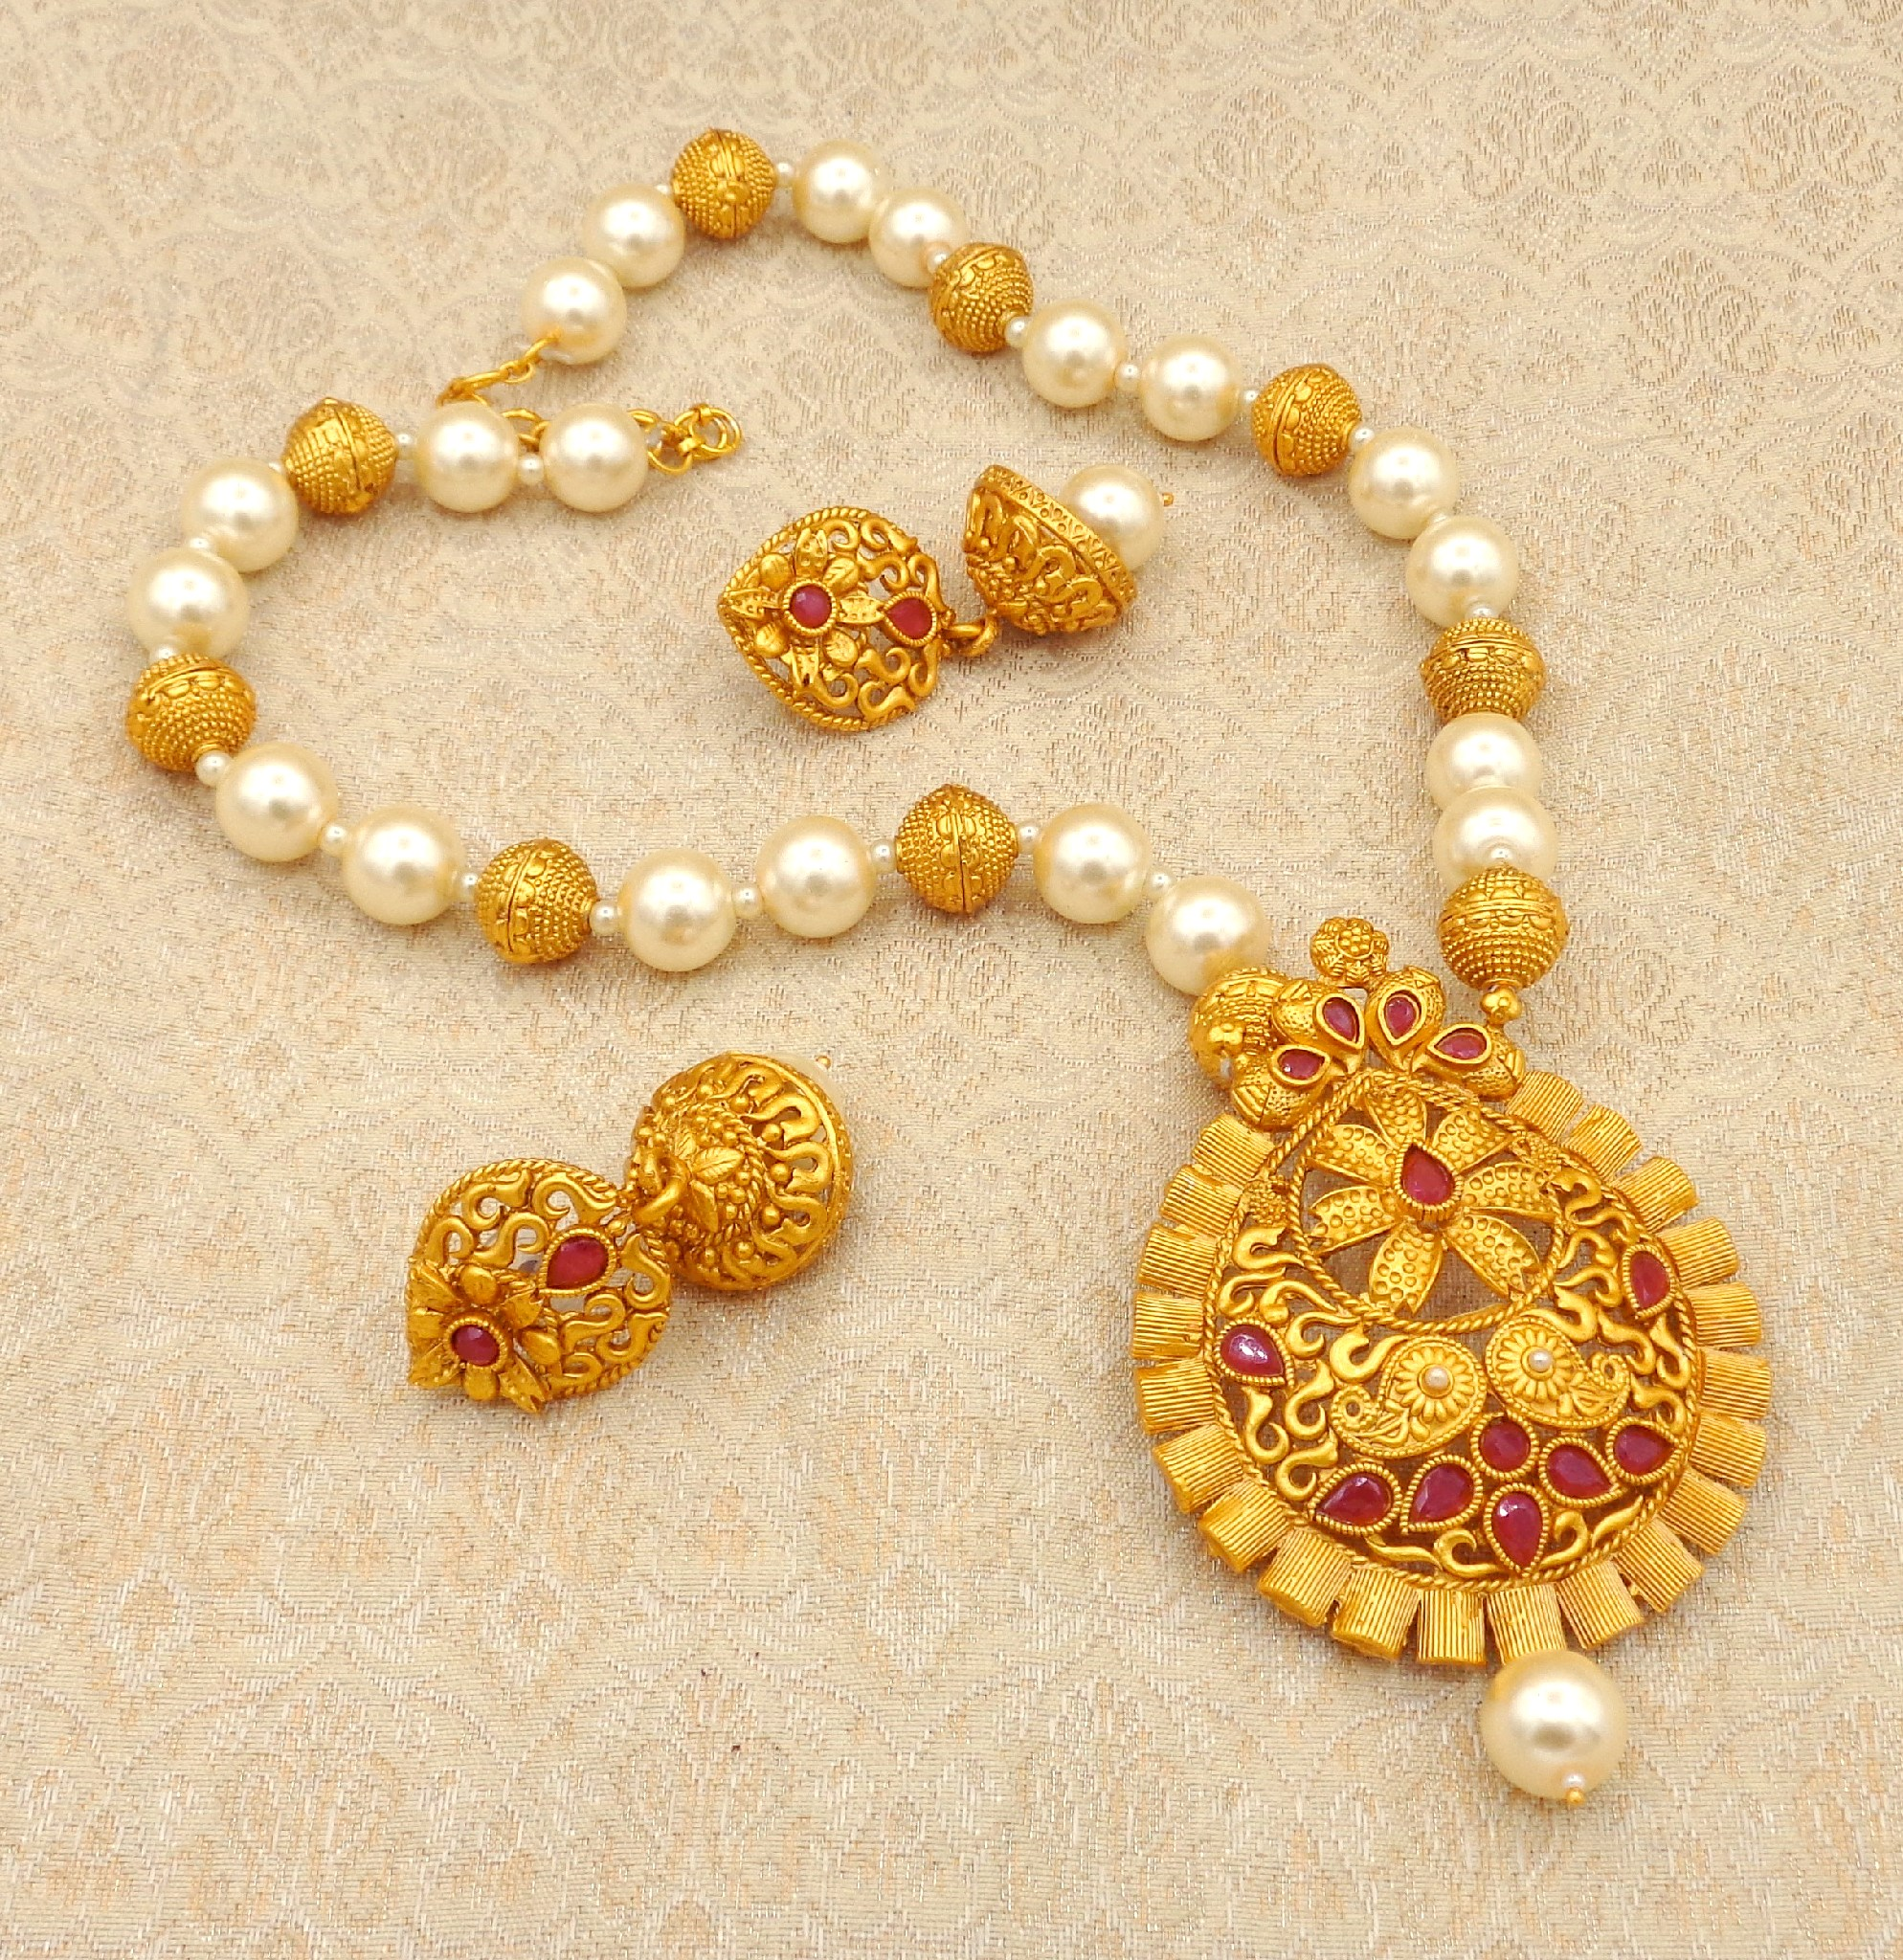 Engagement & Wedding Bridal & Wedding Party Jewelry Able Indian Women Necklace Set Pendant With Chain Zircon Gold Plated Jewelry Peacock By Scientific Process